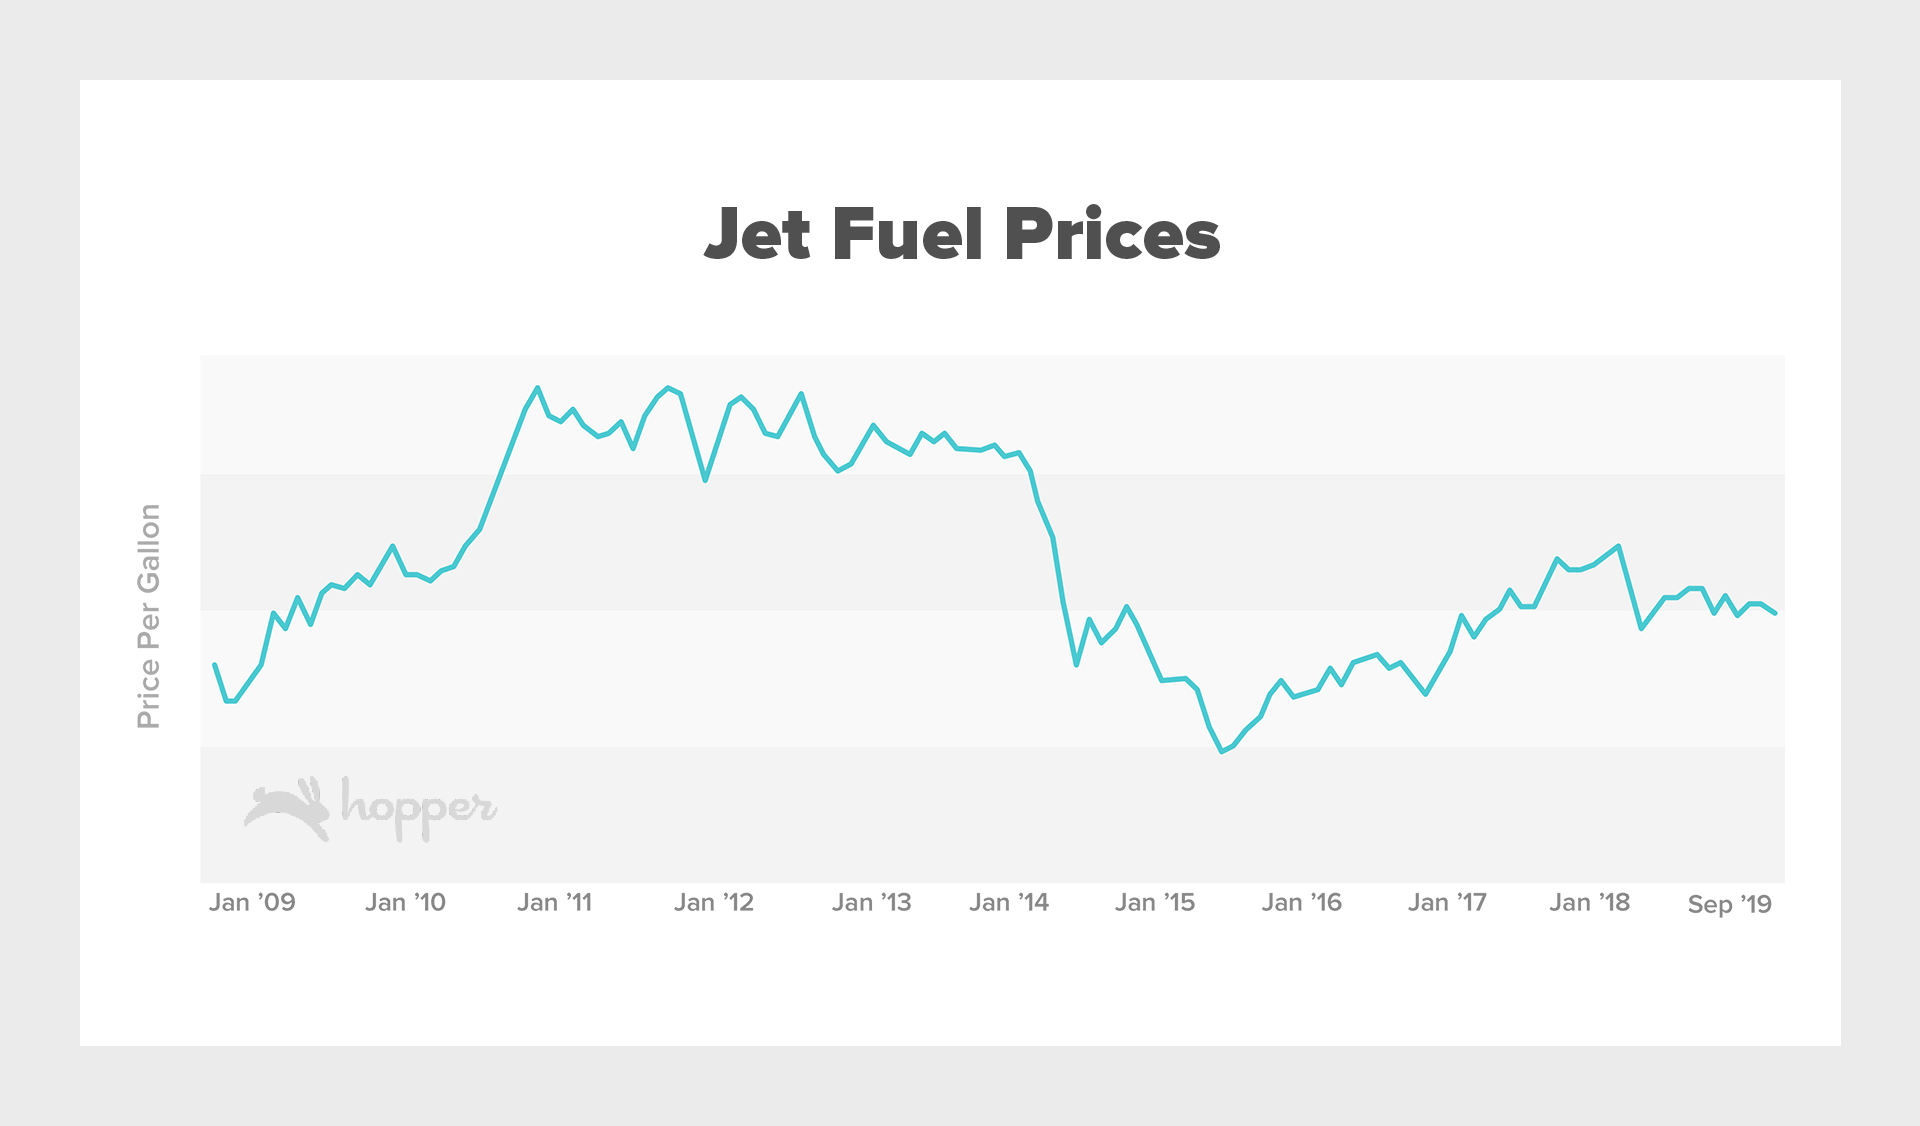 2019-in-Review-2020-ExpectationsJet Fuel Prices